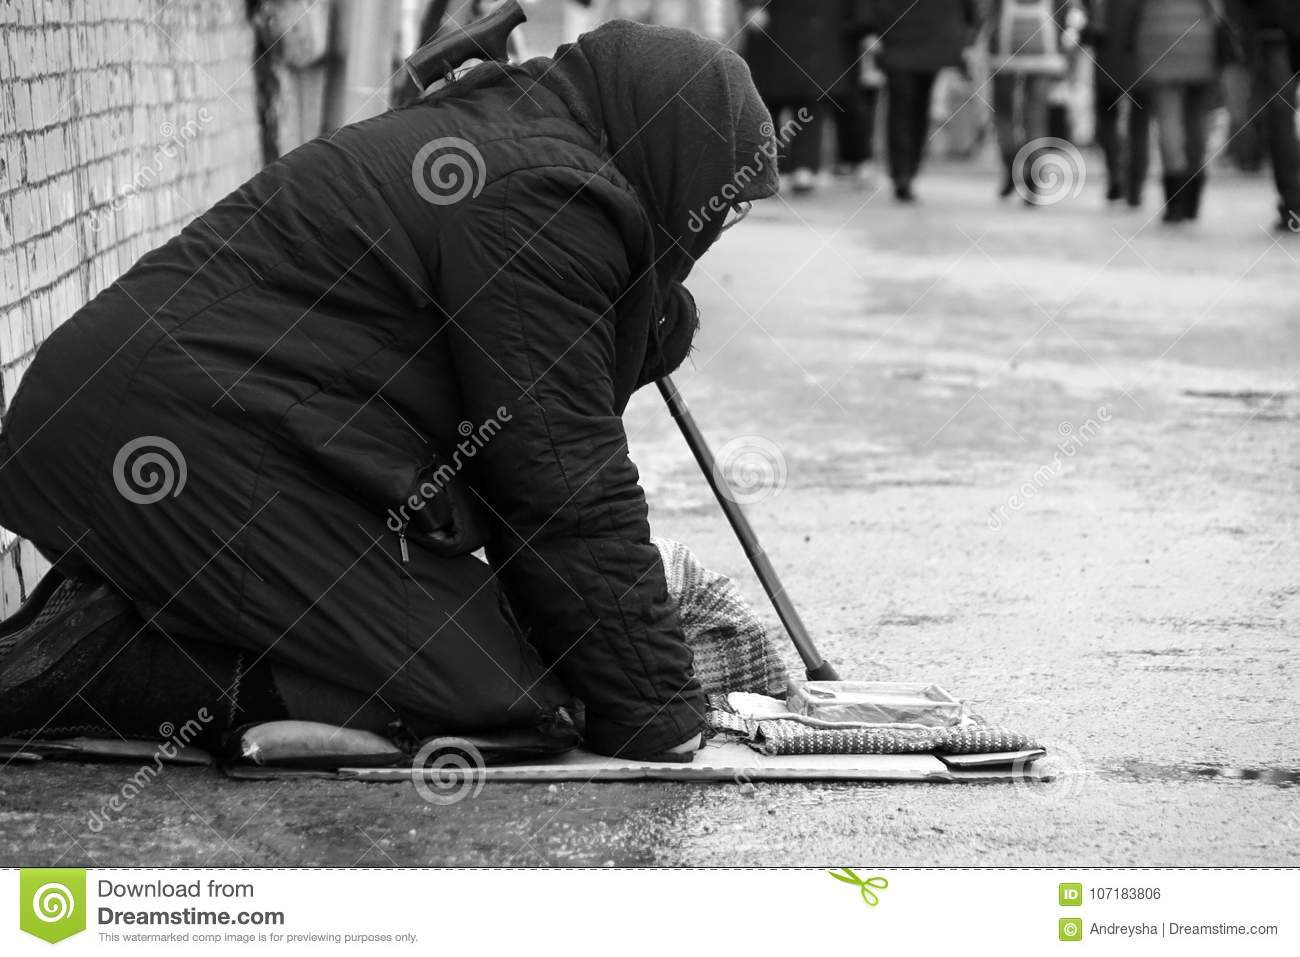 January 2018 sad homeless woman sitting on the street people passing by black and white photo